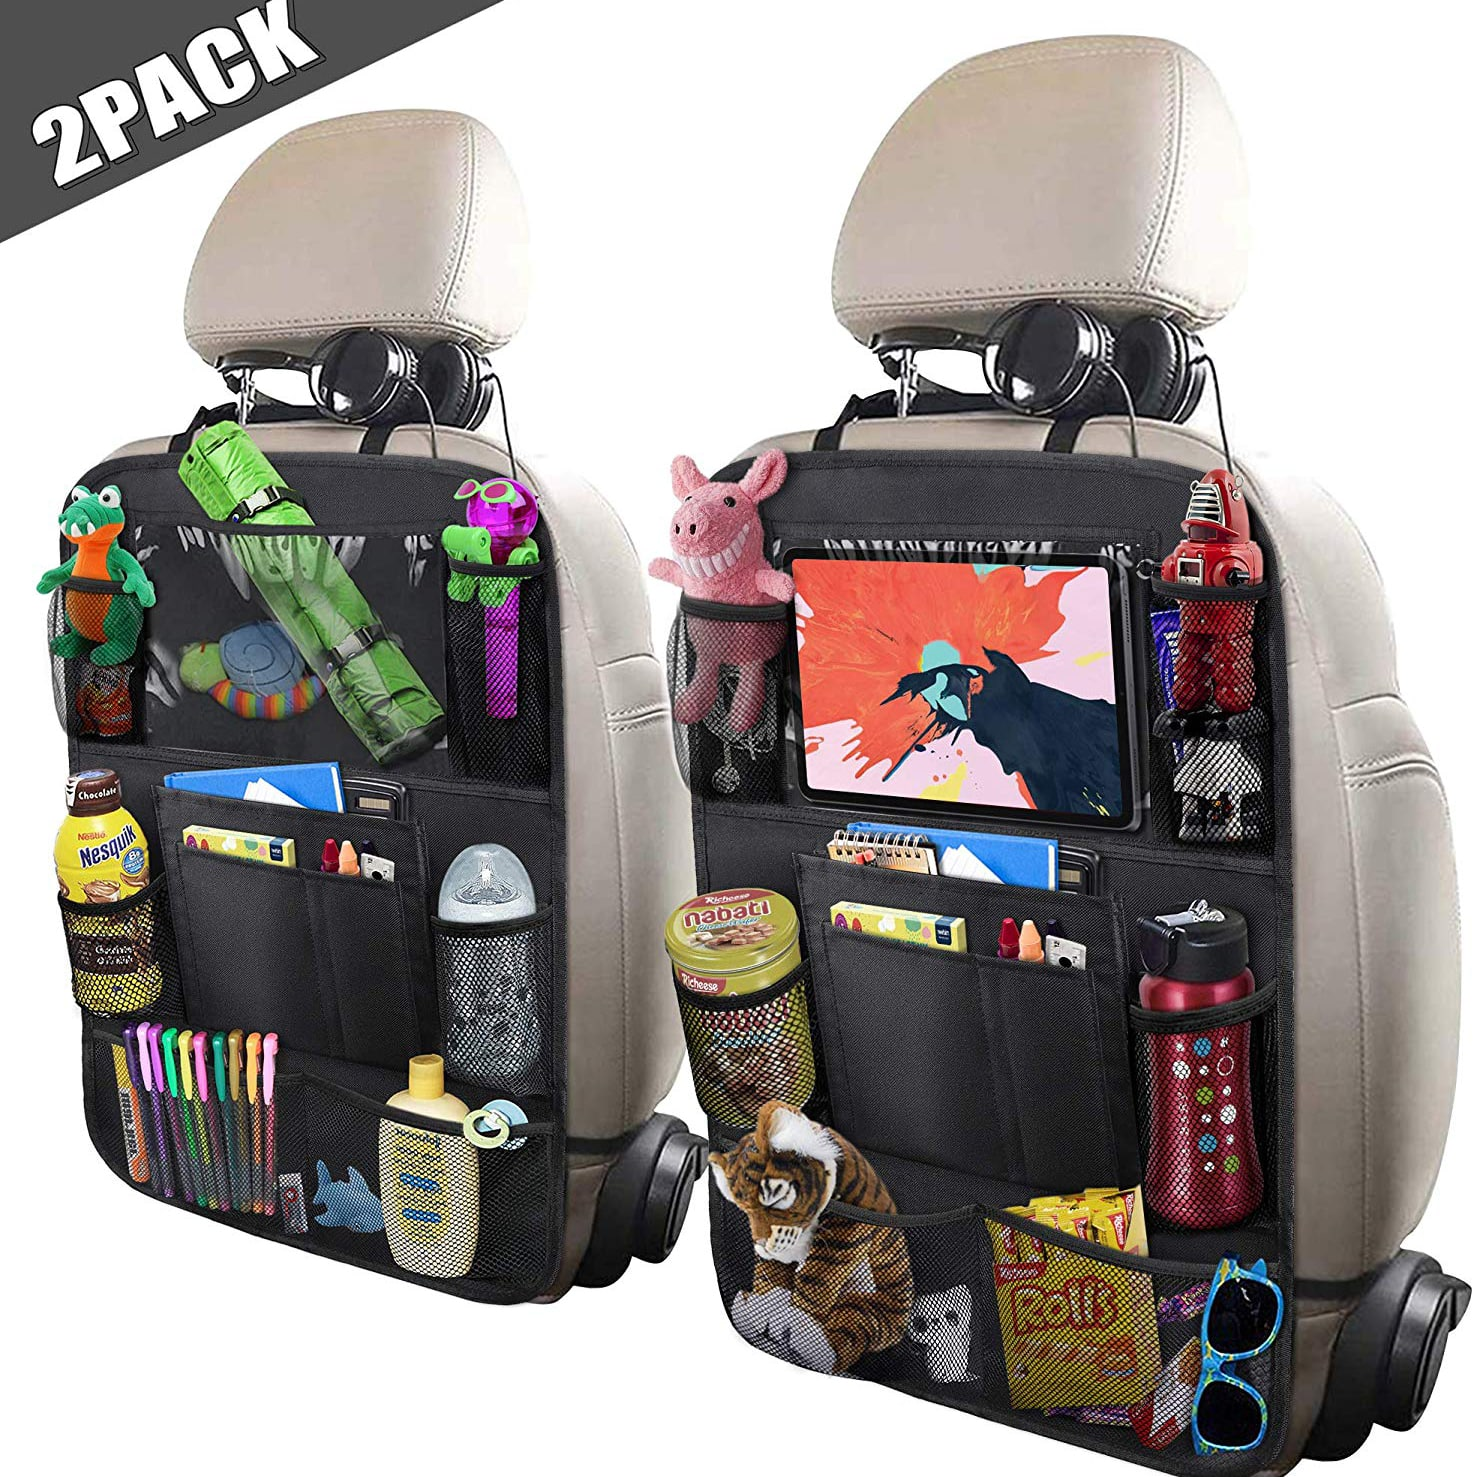 ULEEKA Car Backseat Organizer with a 10